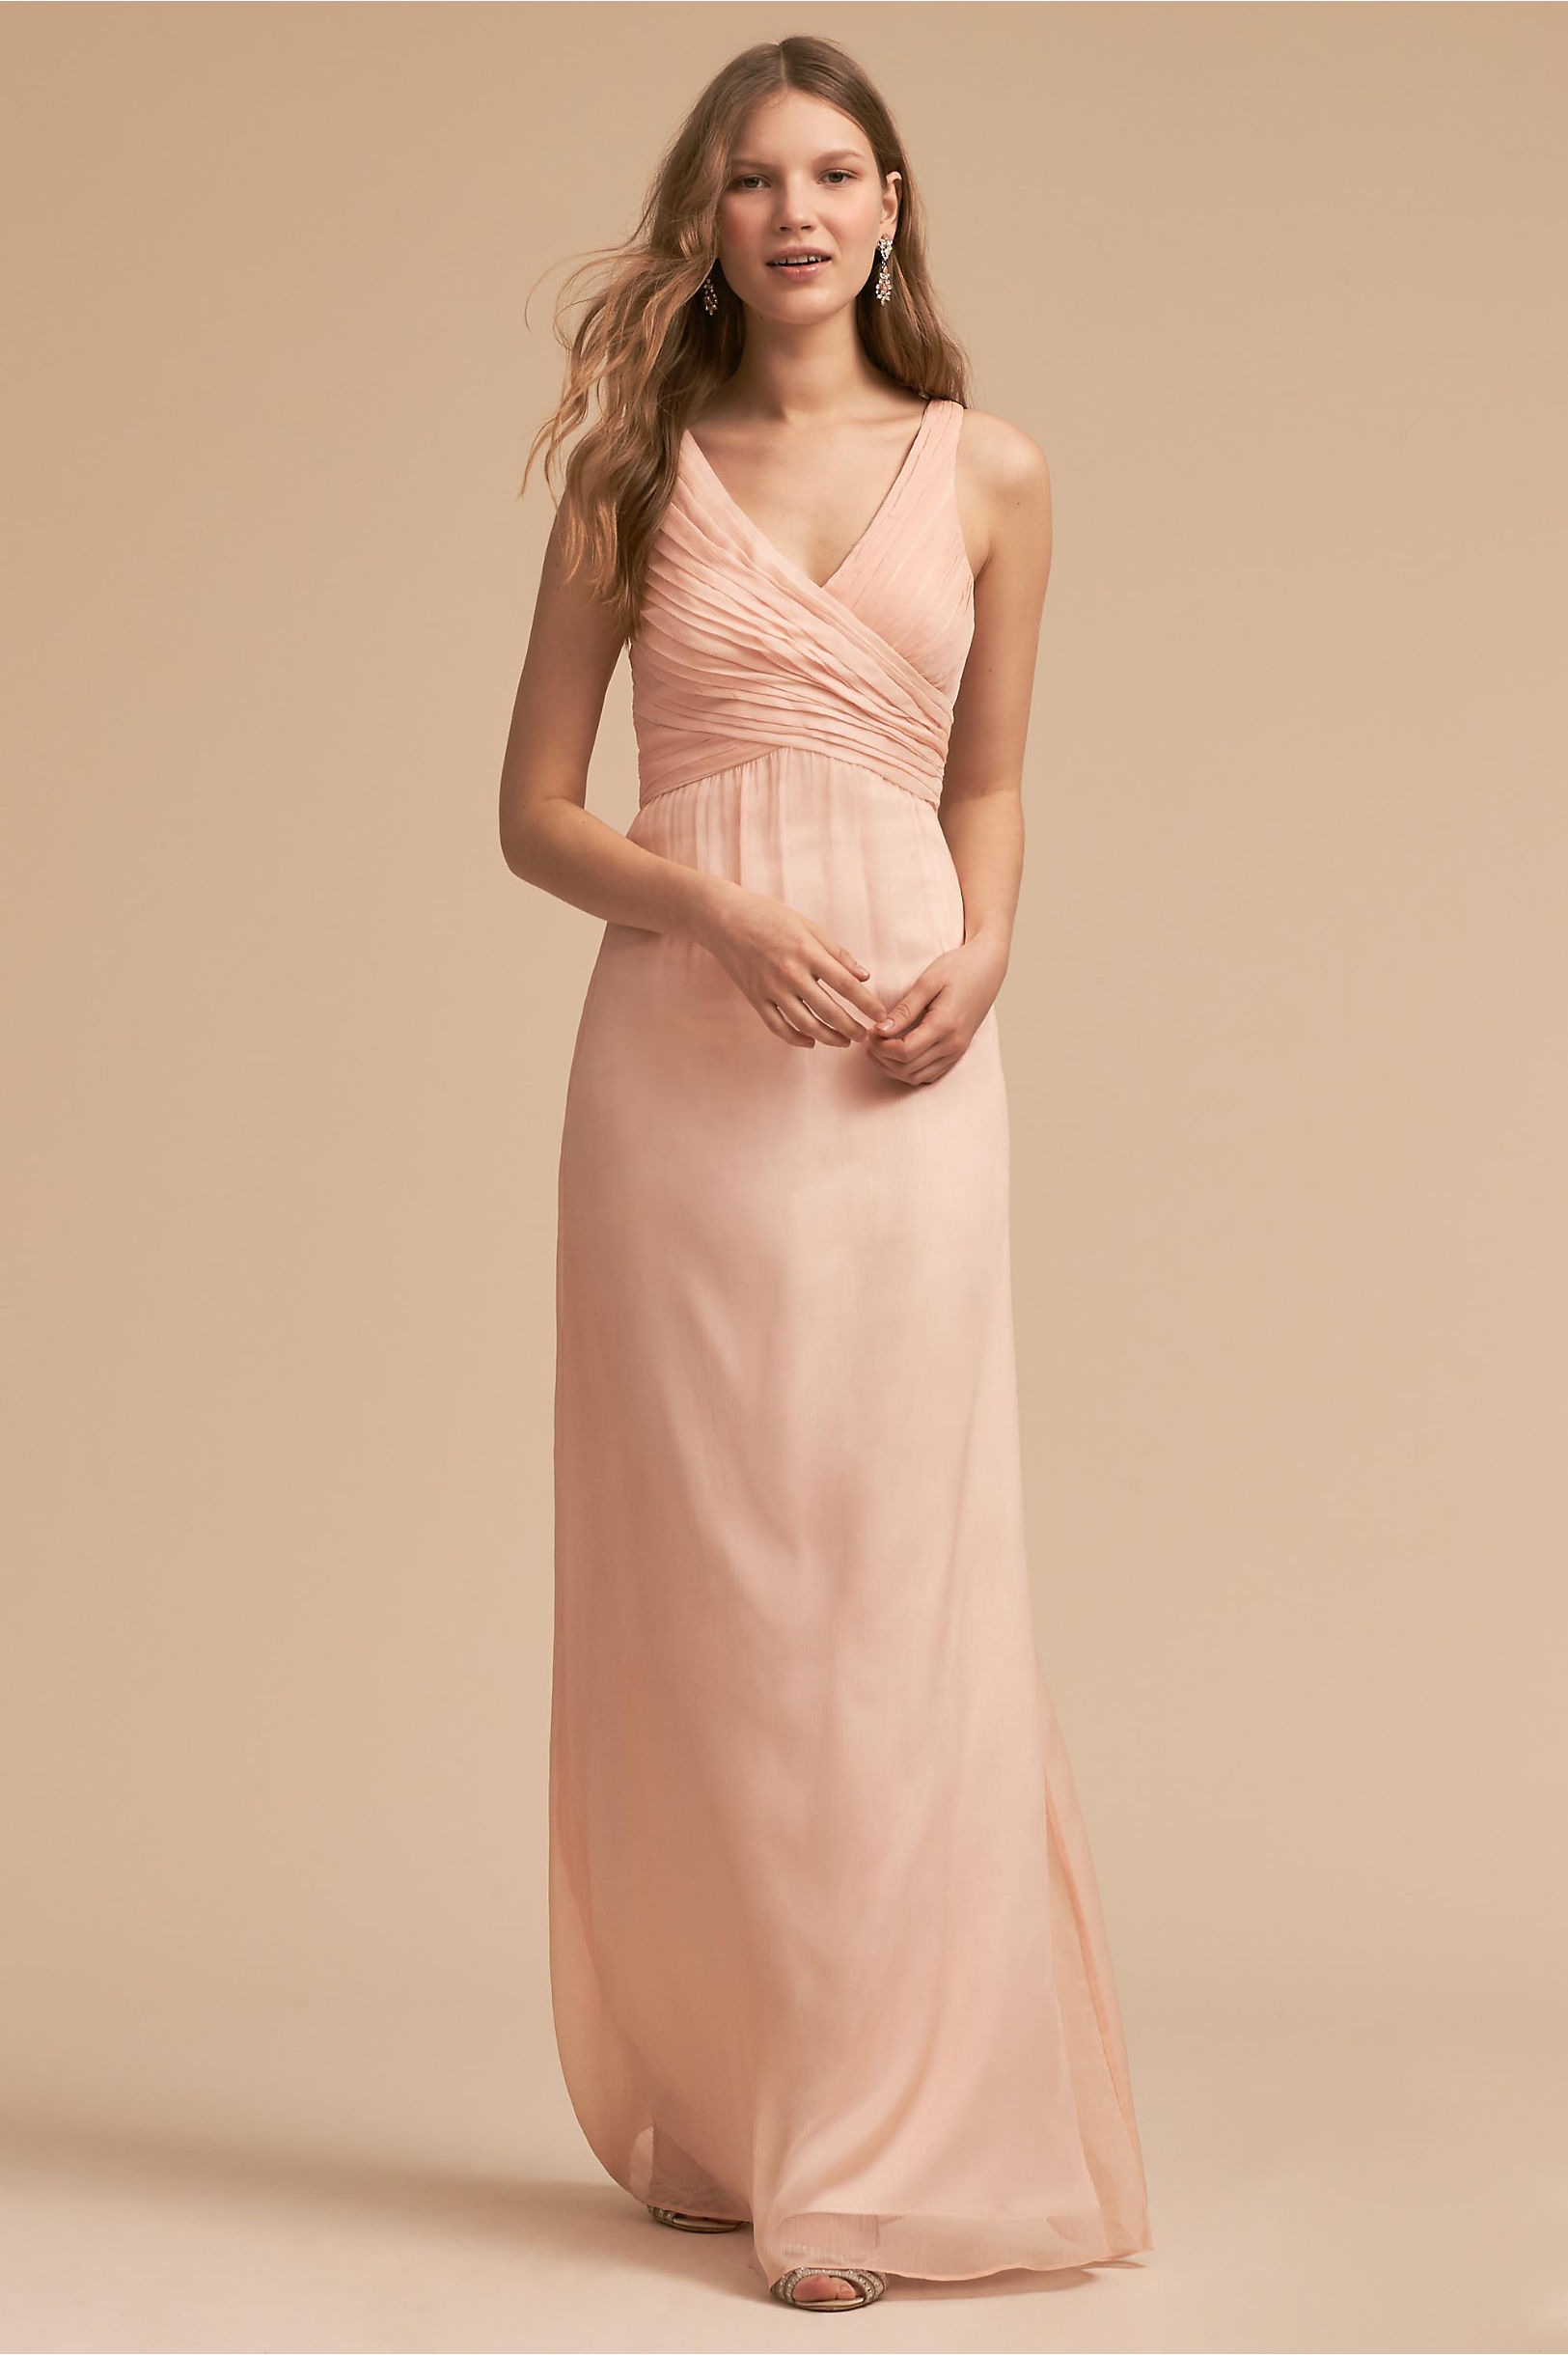 Blush colored light pink bridesmaid dresses bhldn angie dress ombrellifo Gallery